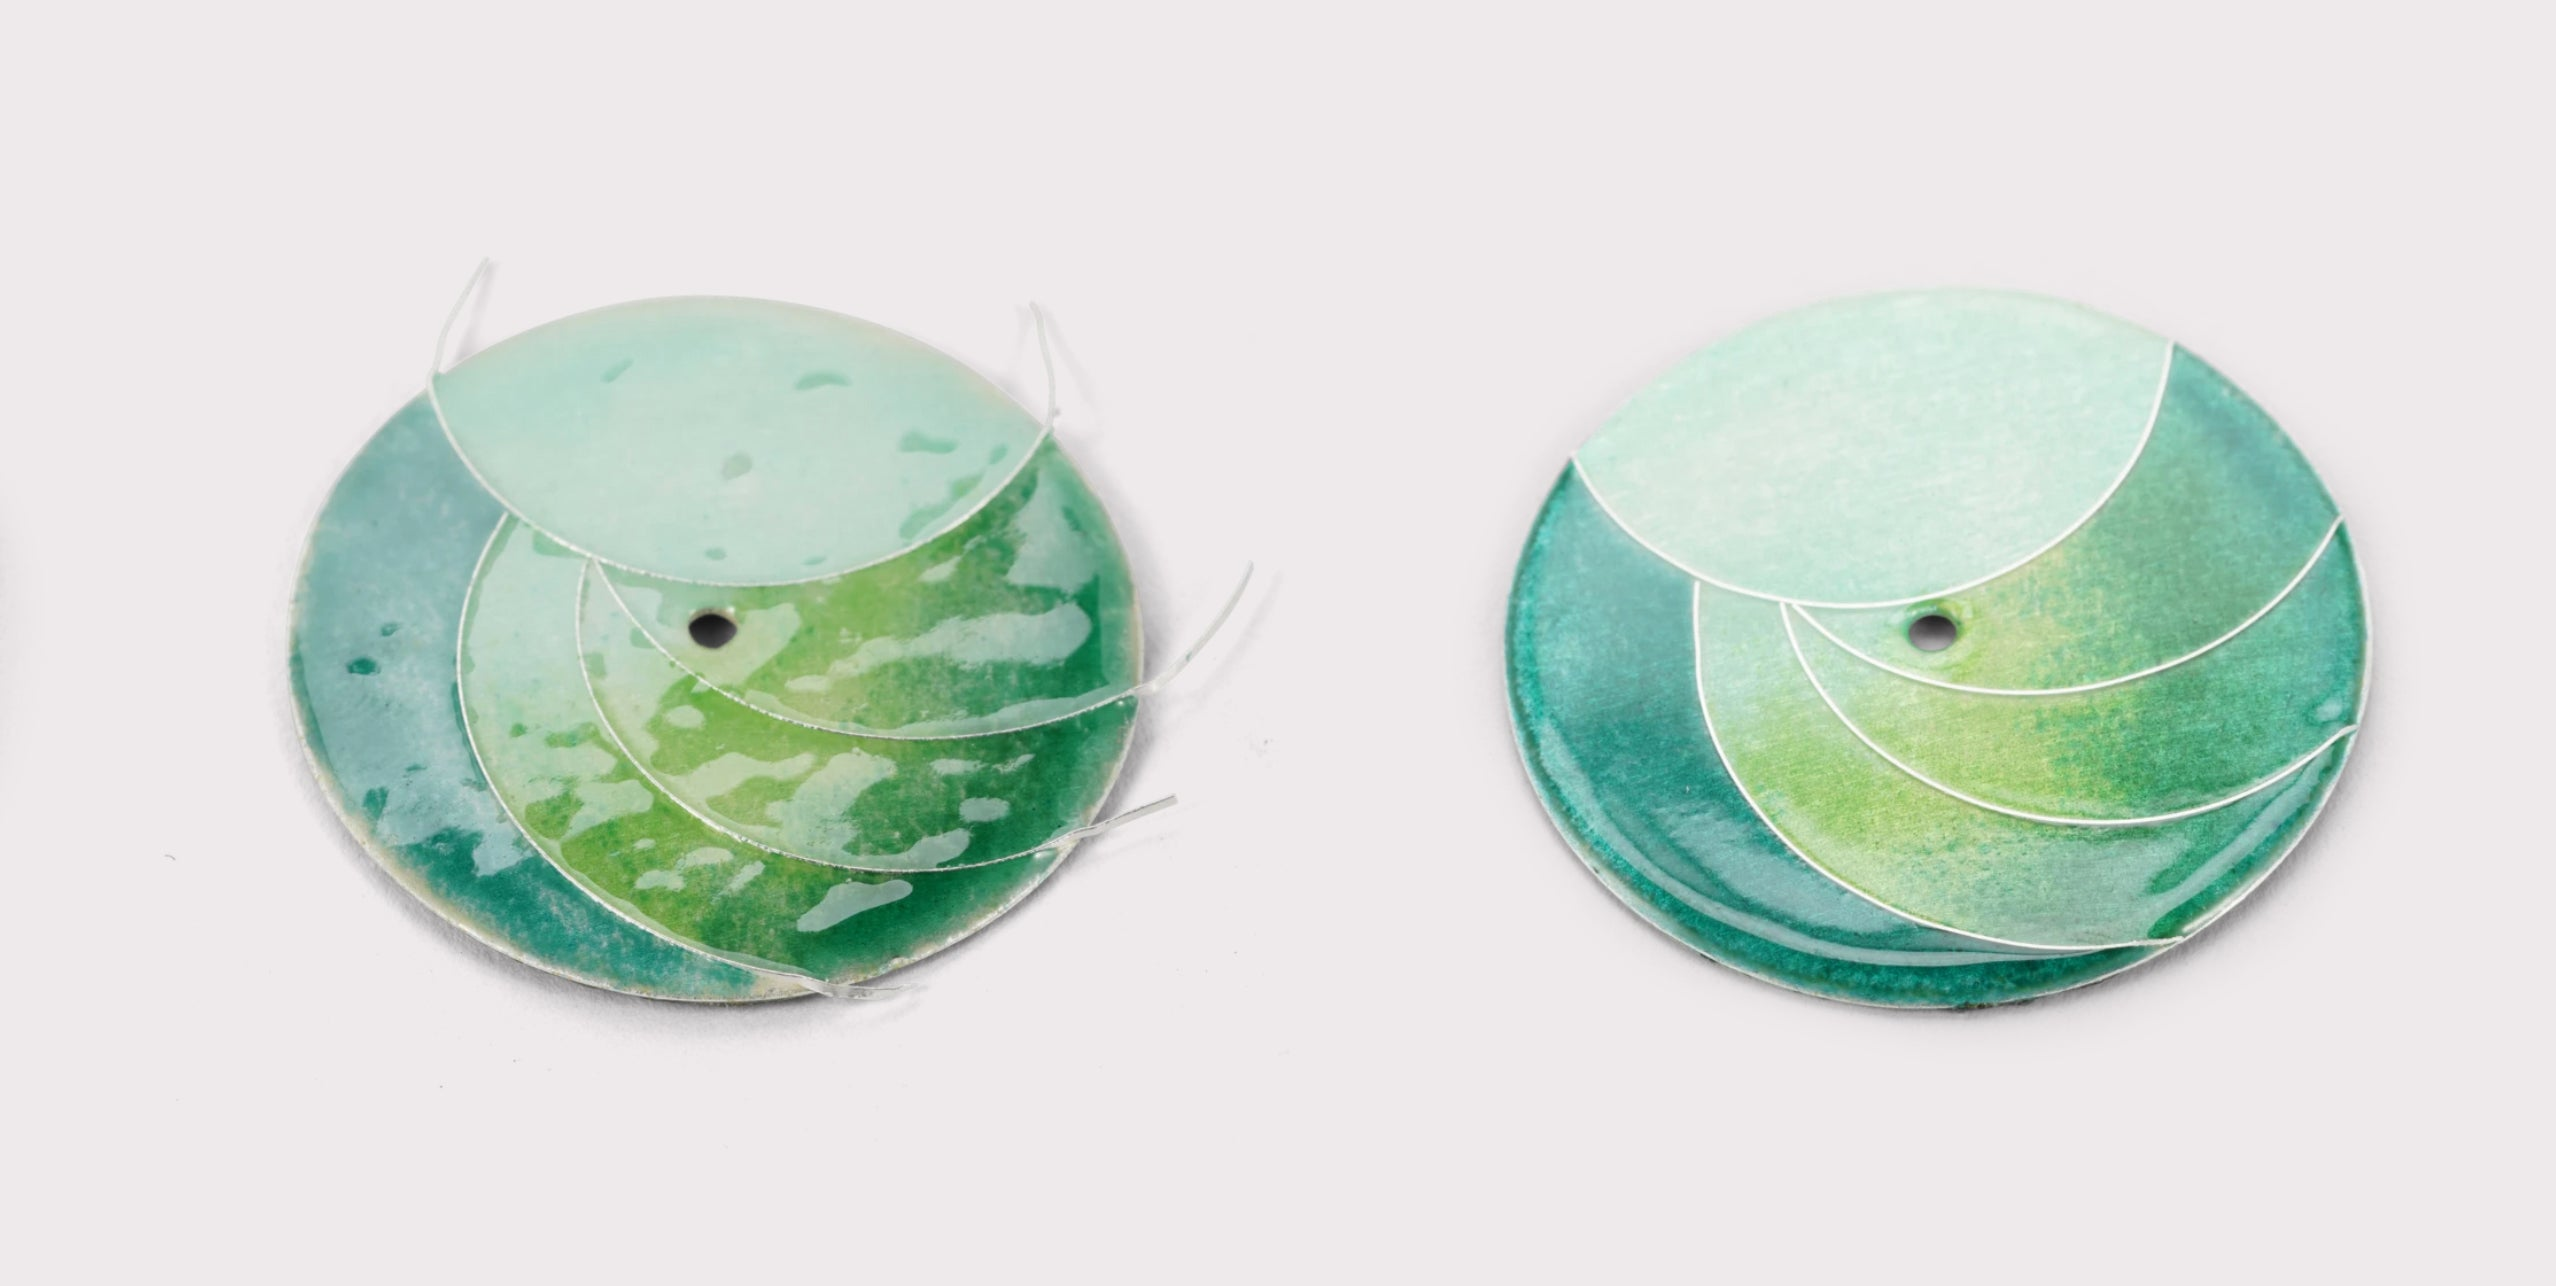 Dials showing the progress of cloisonné process in The Art of Enamel Dials for A Collected Man London